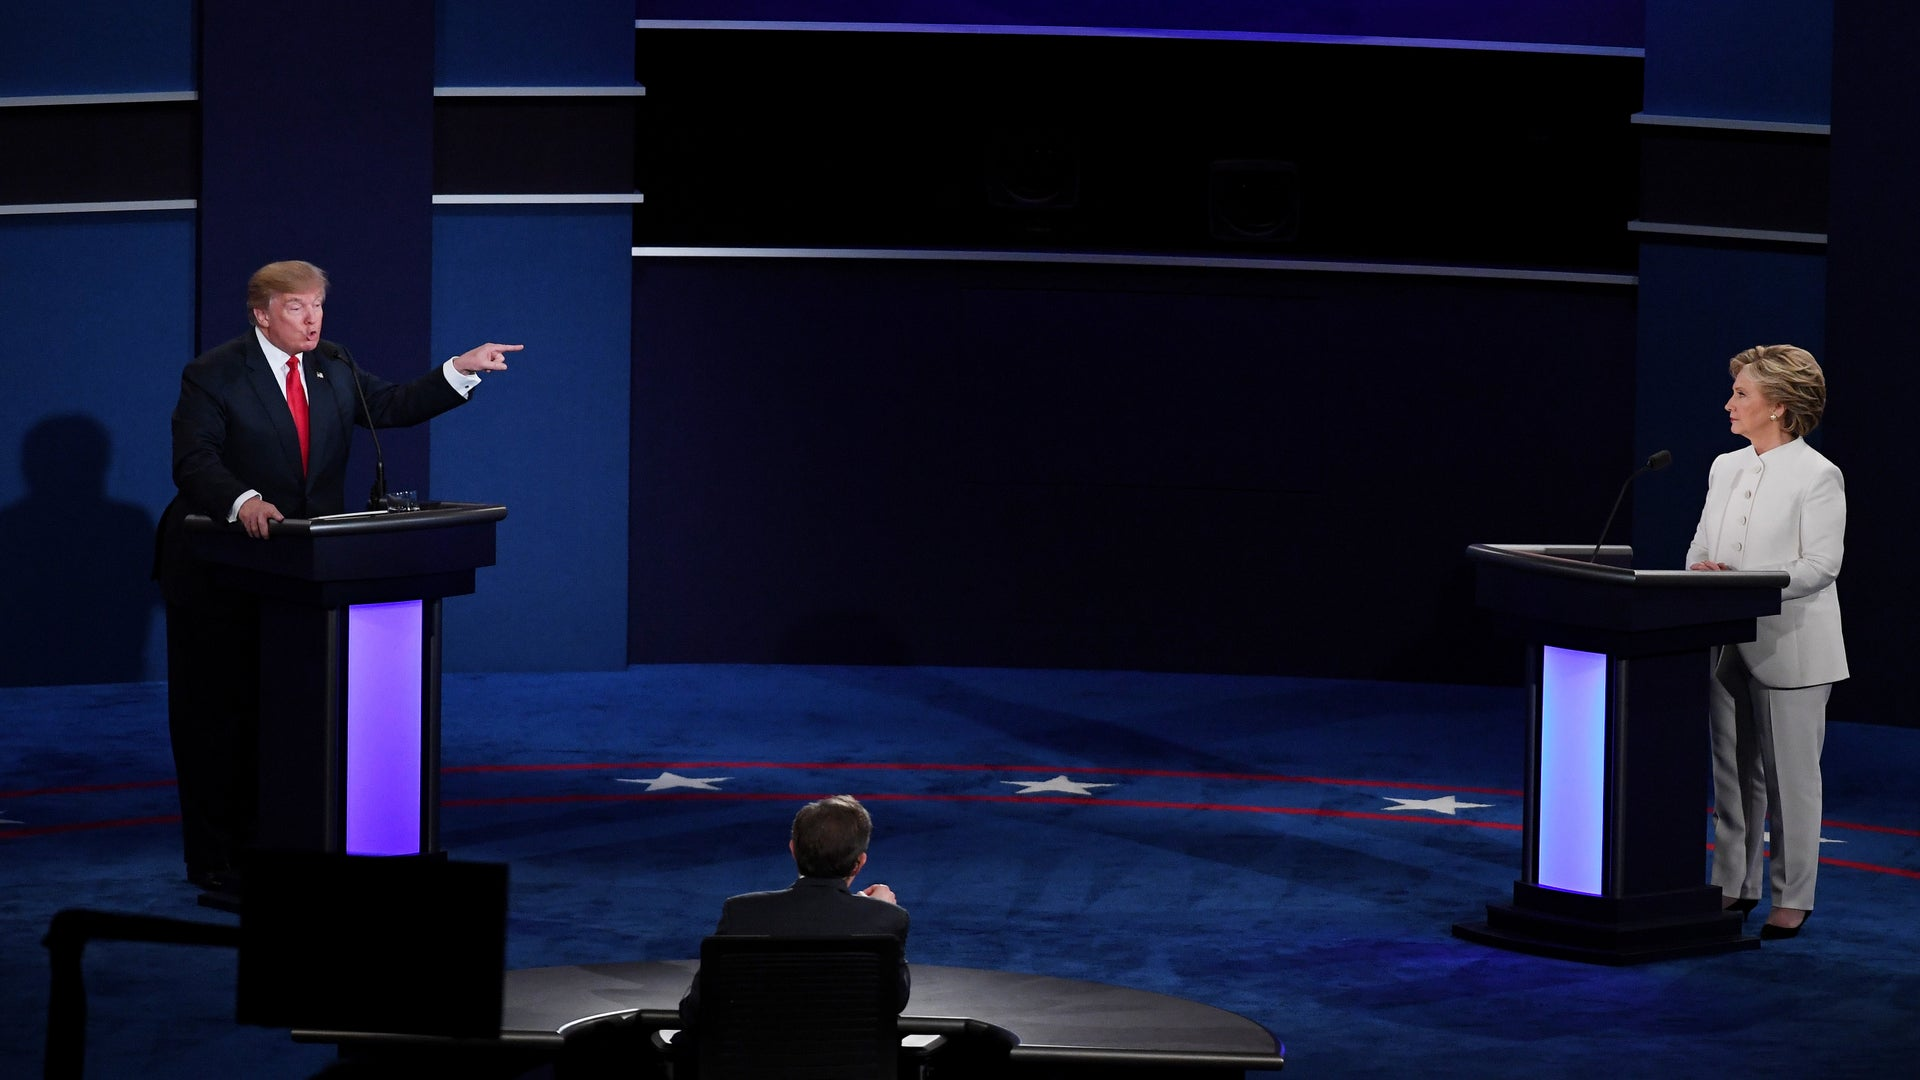 Donald Trump Claims Clinton Is Responsible for Allegations He Attacked Women